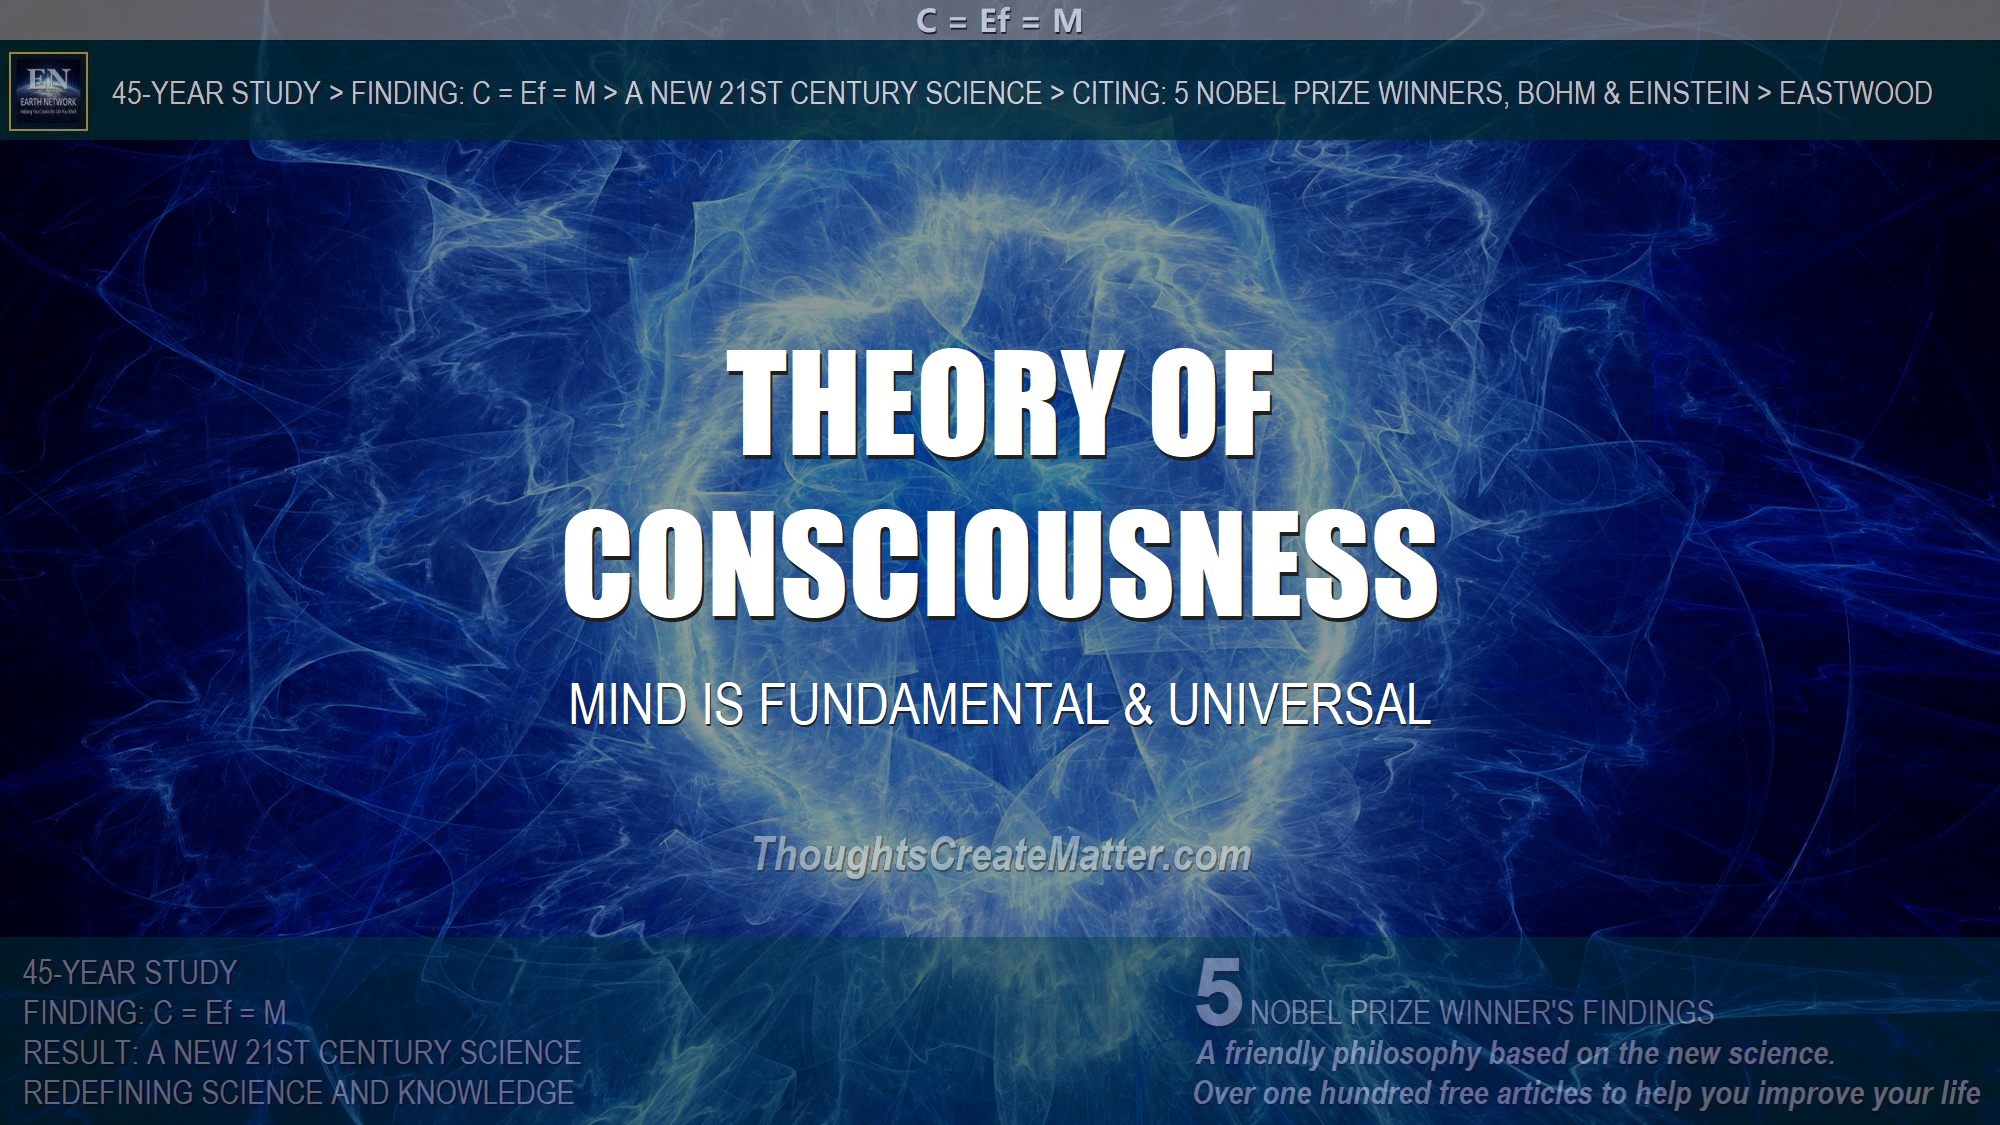 electromagnetic pulse depicts consciousness-science-theory-of-mind-is-fundamental-universal